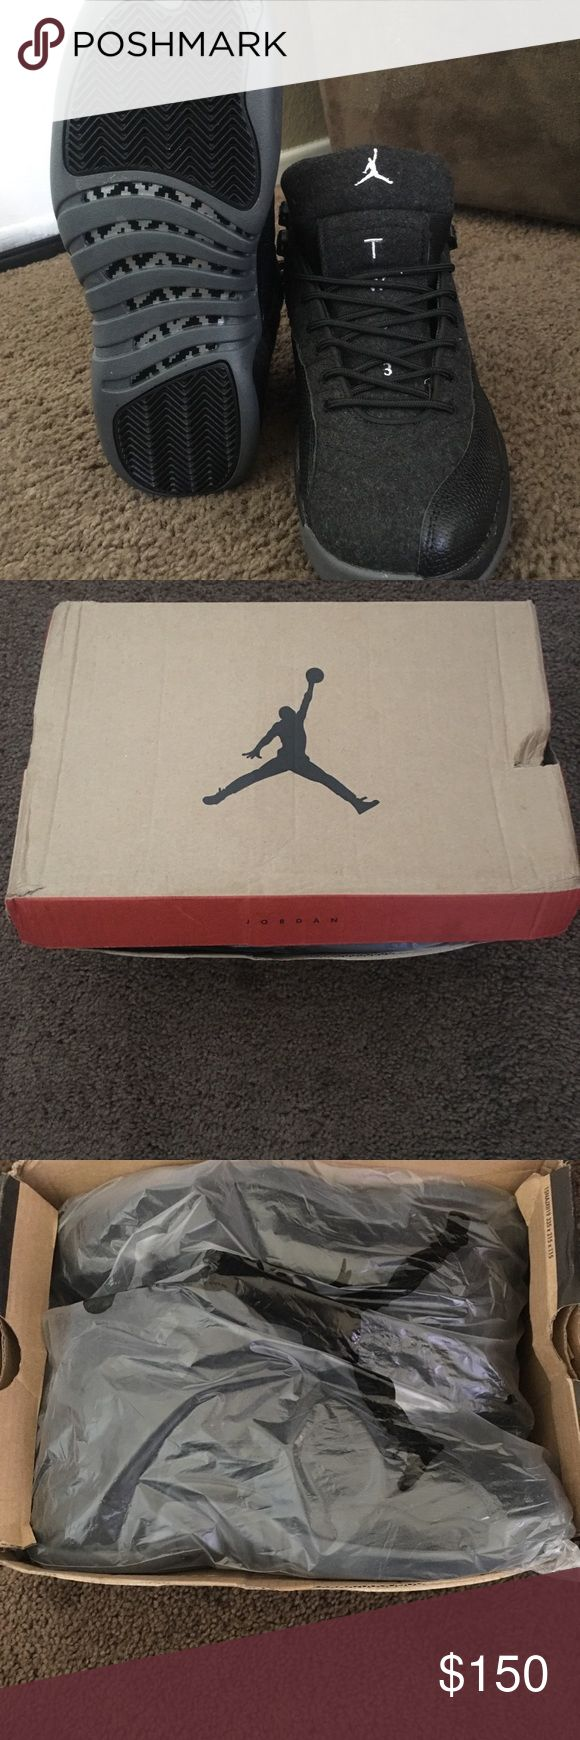 Air Jordan Retro 12 I have a size 10 in men Air Jordan Retro 12. They are still like new only been worn 2 times. They have a wool like material wrapped around them with black and grey accent colors. Air Jordan Shoes Sneakers